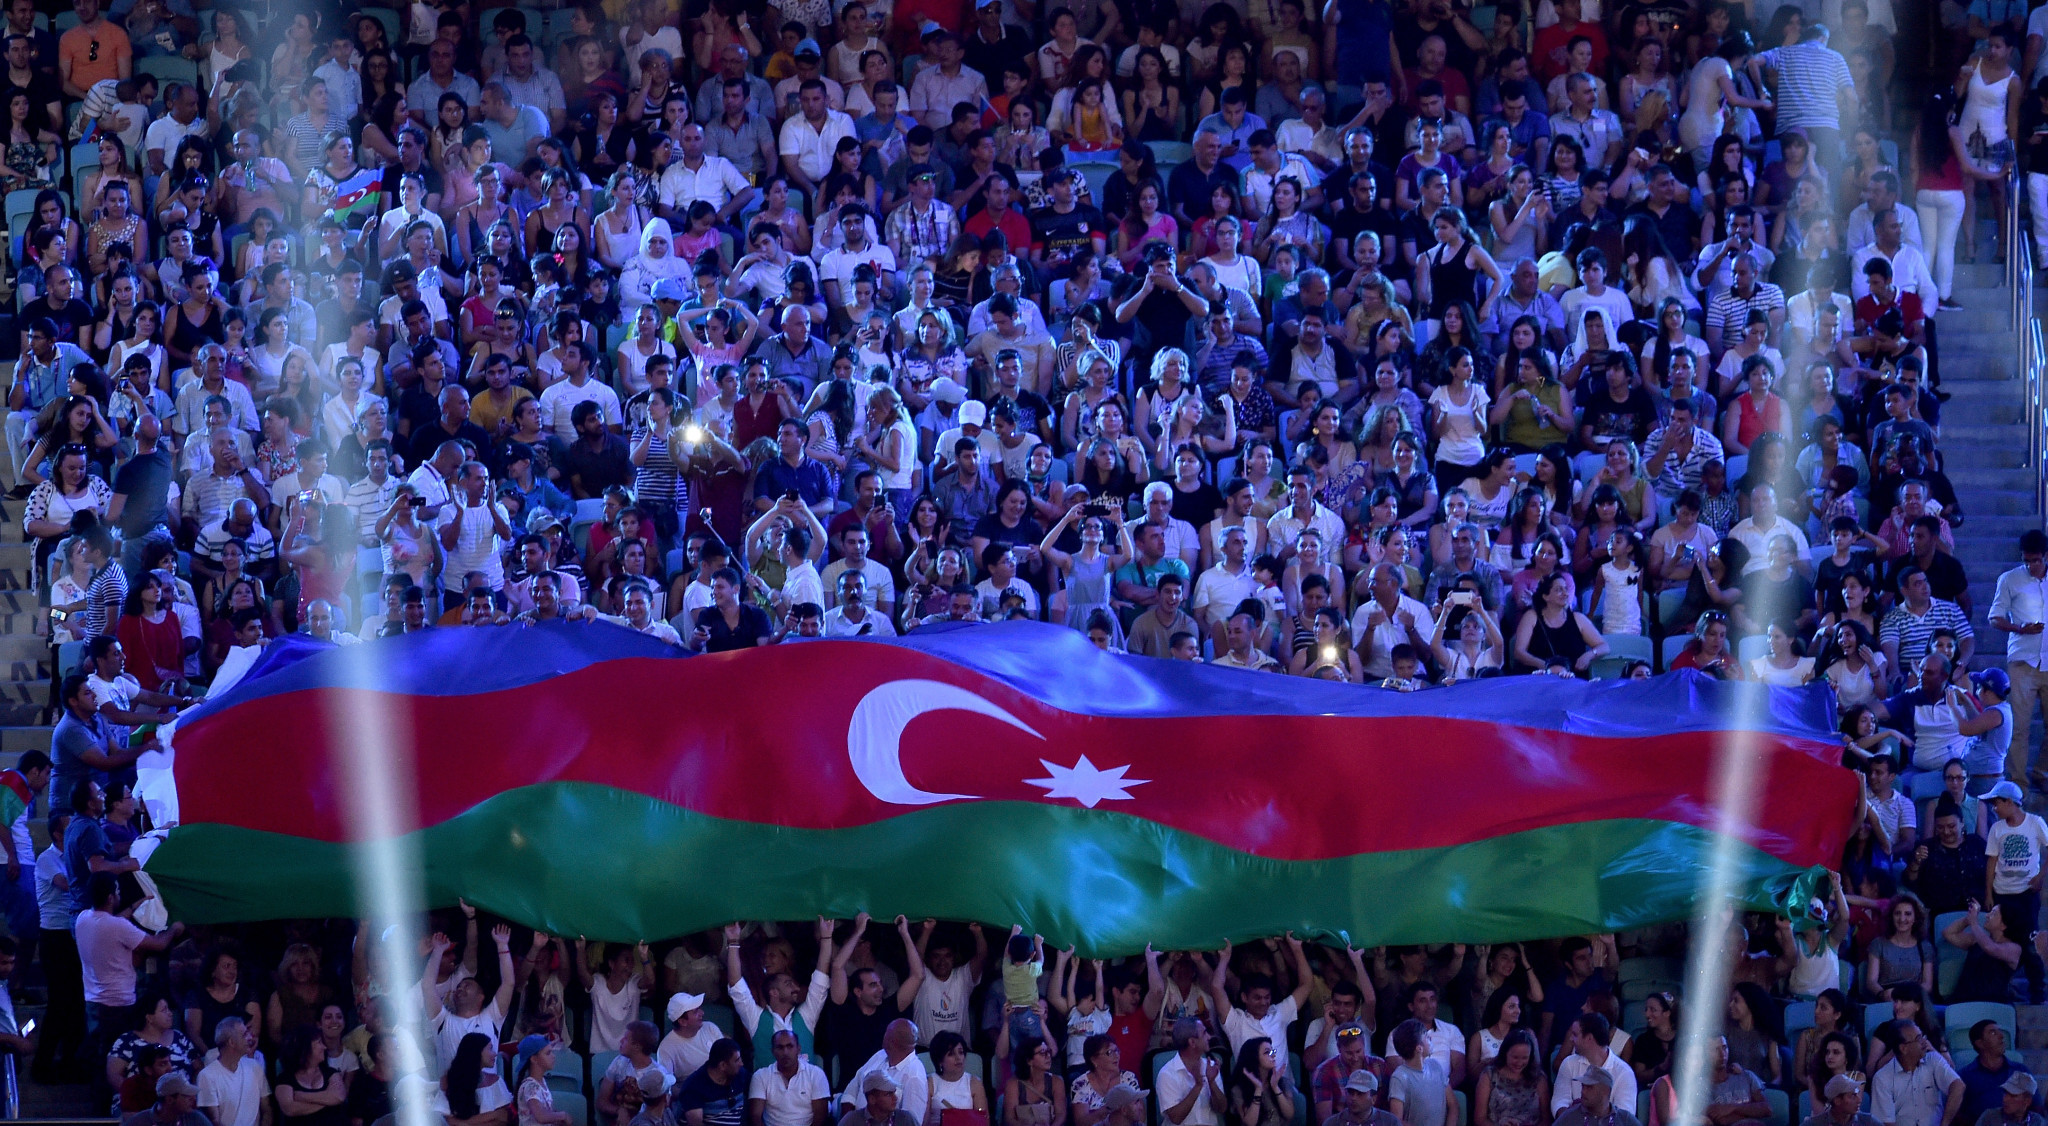 Around 170,000 tourists reportedly visited Azerbaijan during the 2015 European Games in Baku ©Getty Images